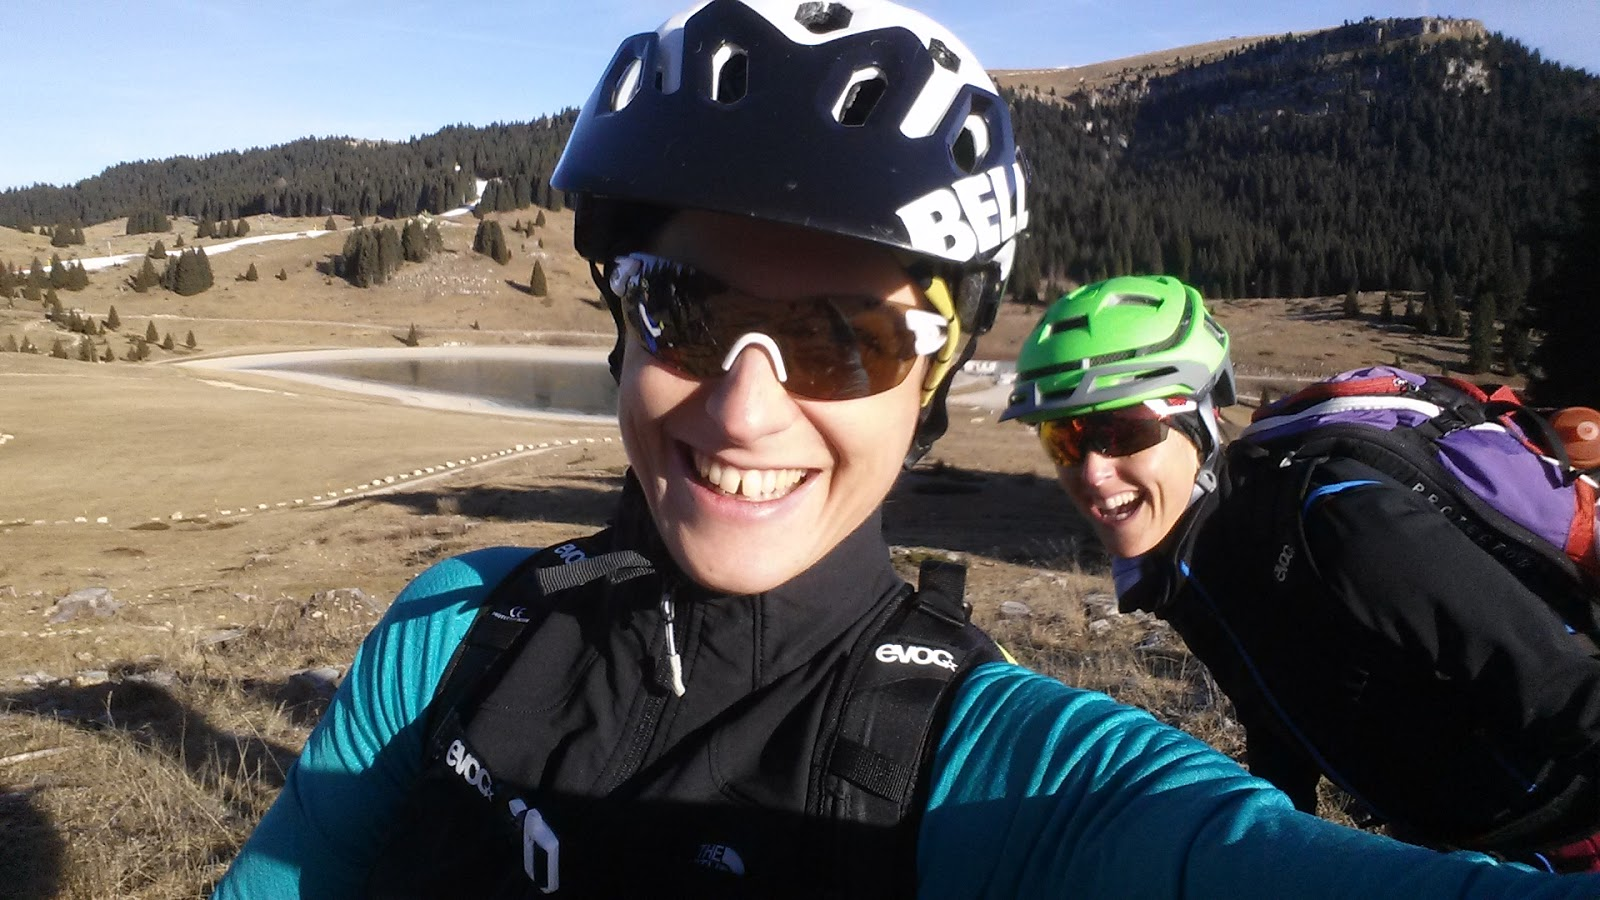 visit trentino, this is Passo Coe near Folgaria and me and Giulia we cycled over there with a fat bike